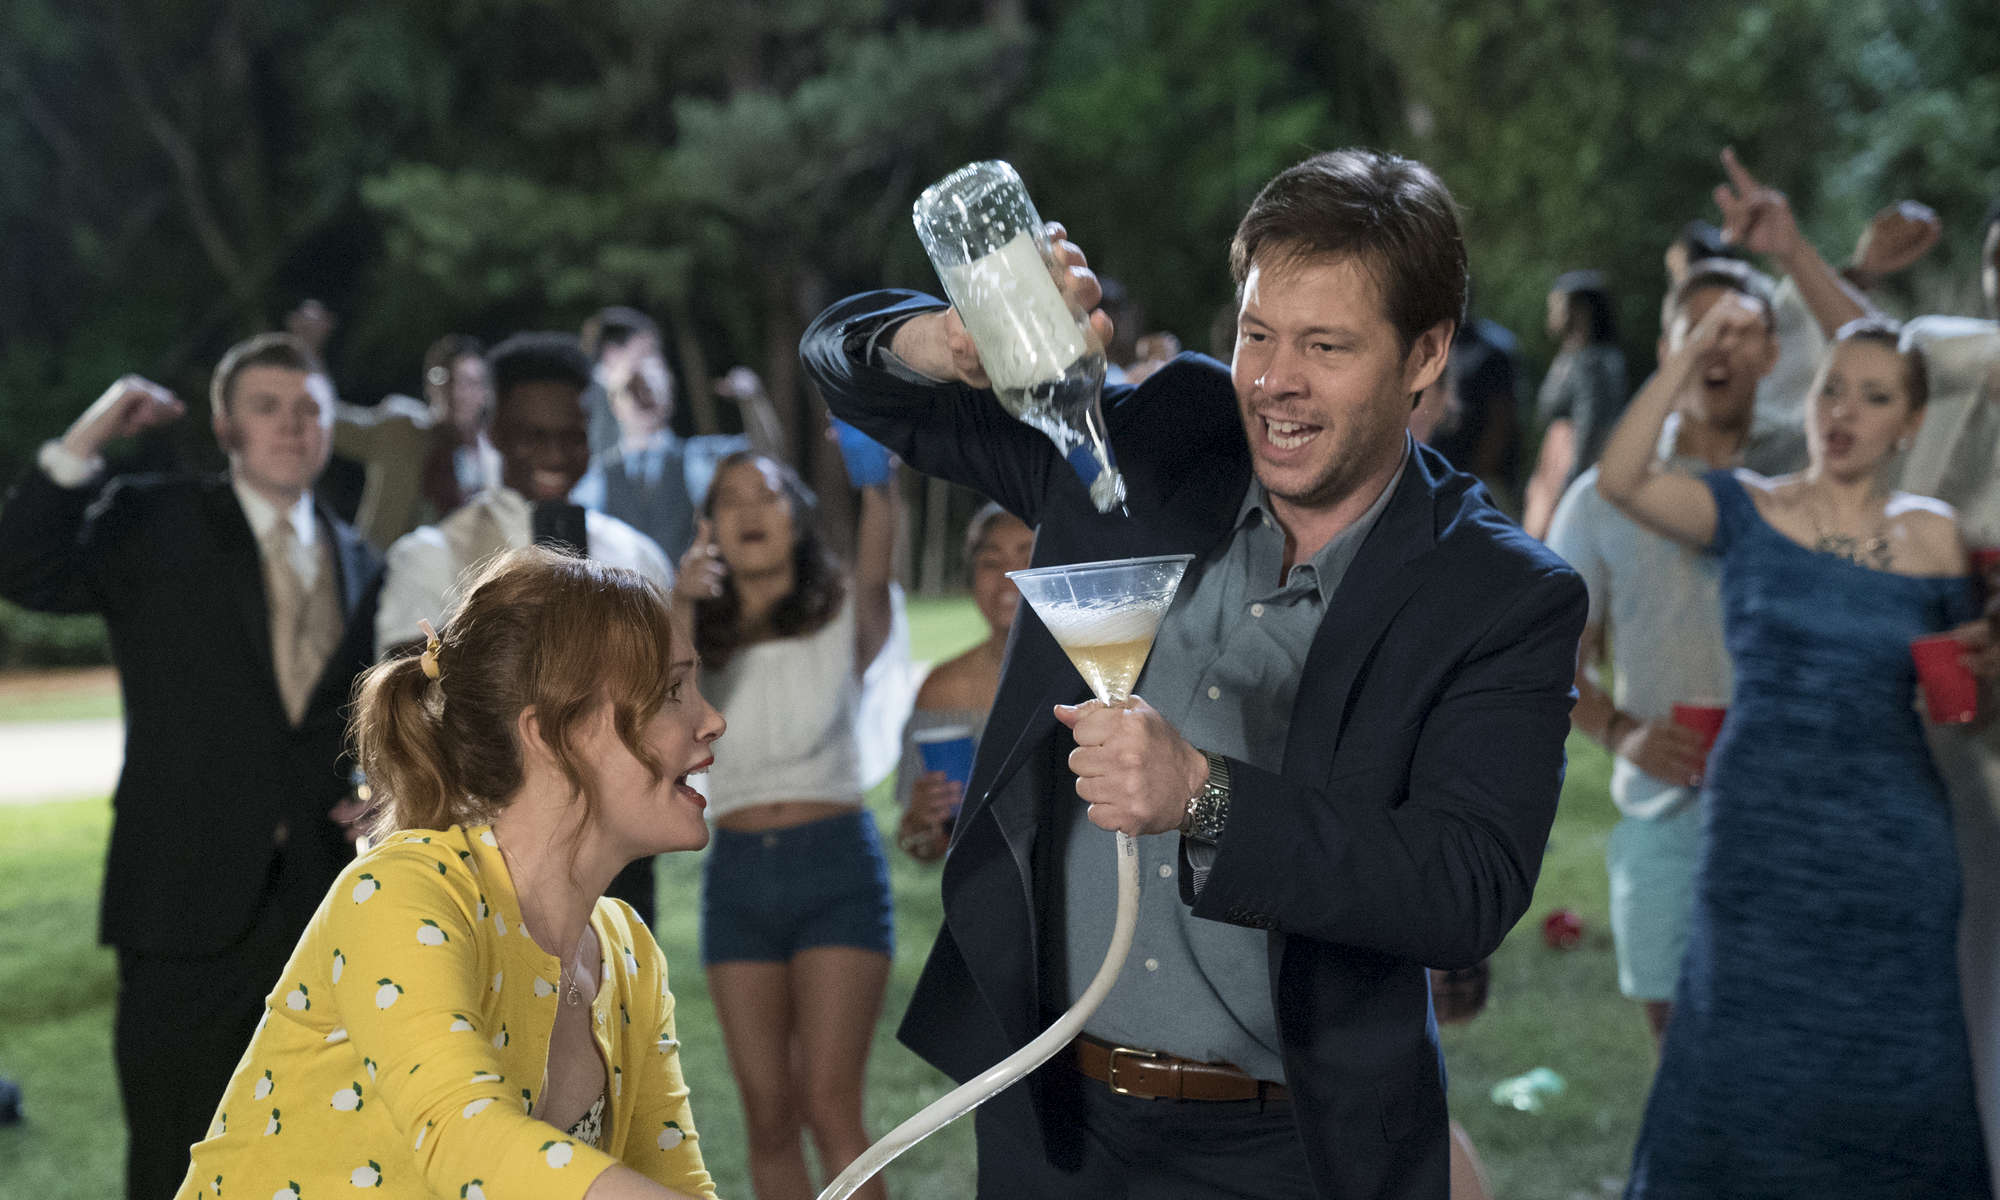 Lisa (LESLIE MANN) and Hunter (IKE BARINHOLTZ) in {quote}Blockers,{quote} the directorial debut of Kay Cannon (writer of the {quote}Pitch Perfect{quote} series).  When three parents discover their daughters' pact to lose their virginity at prom, they launch a covert one-night operation to stop the teens from sealing the deal.